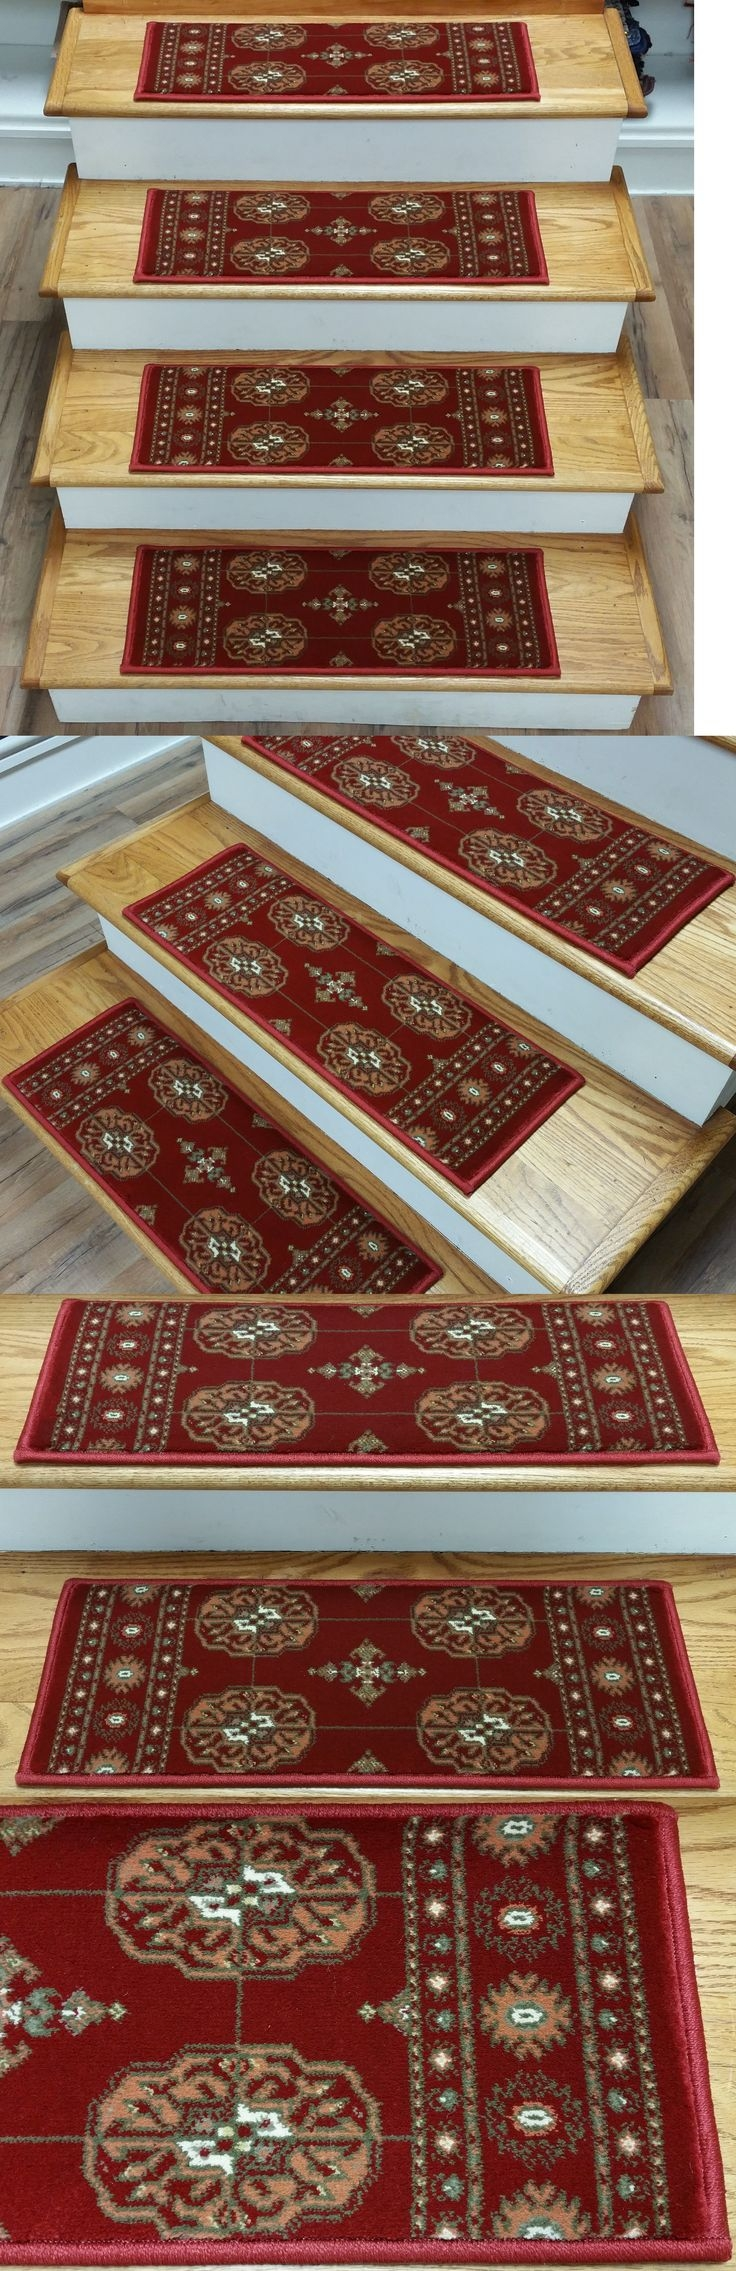 Best 20 Stair Tread Rugs Ideas On Pinterest Carpet Stair Treads Regarding Basket Weave Washable Indoor Stair Tread Rugs (#12 of 20)